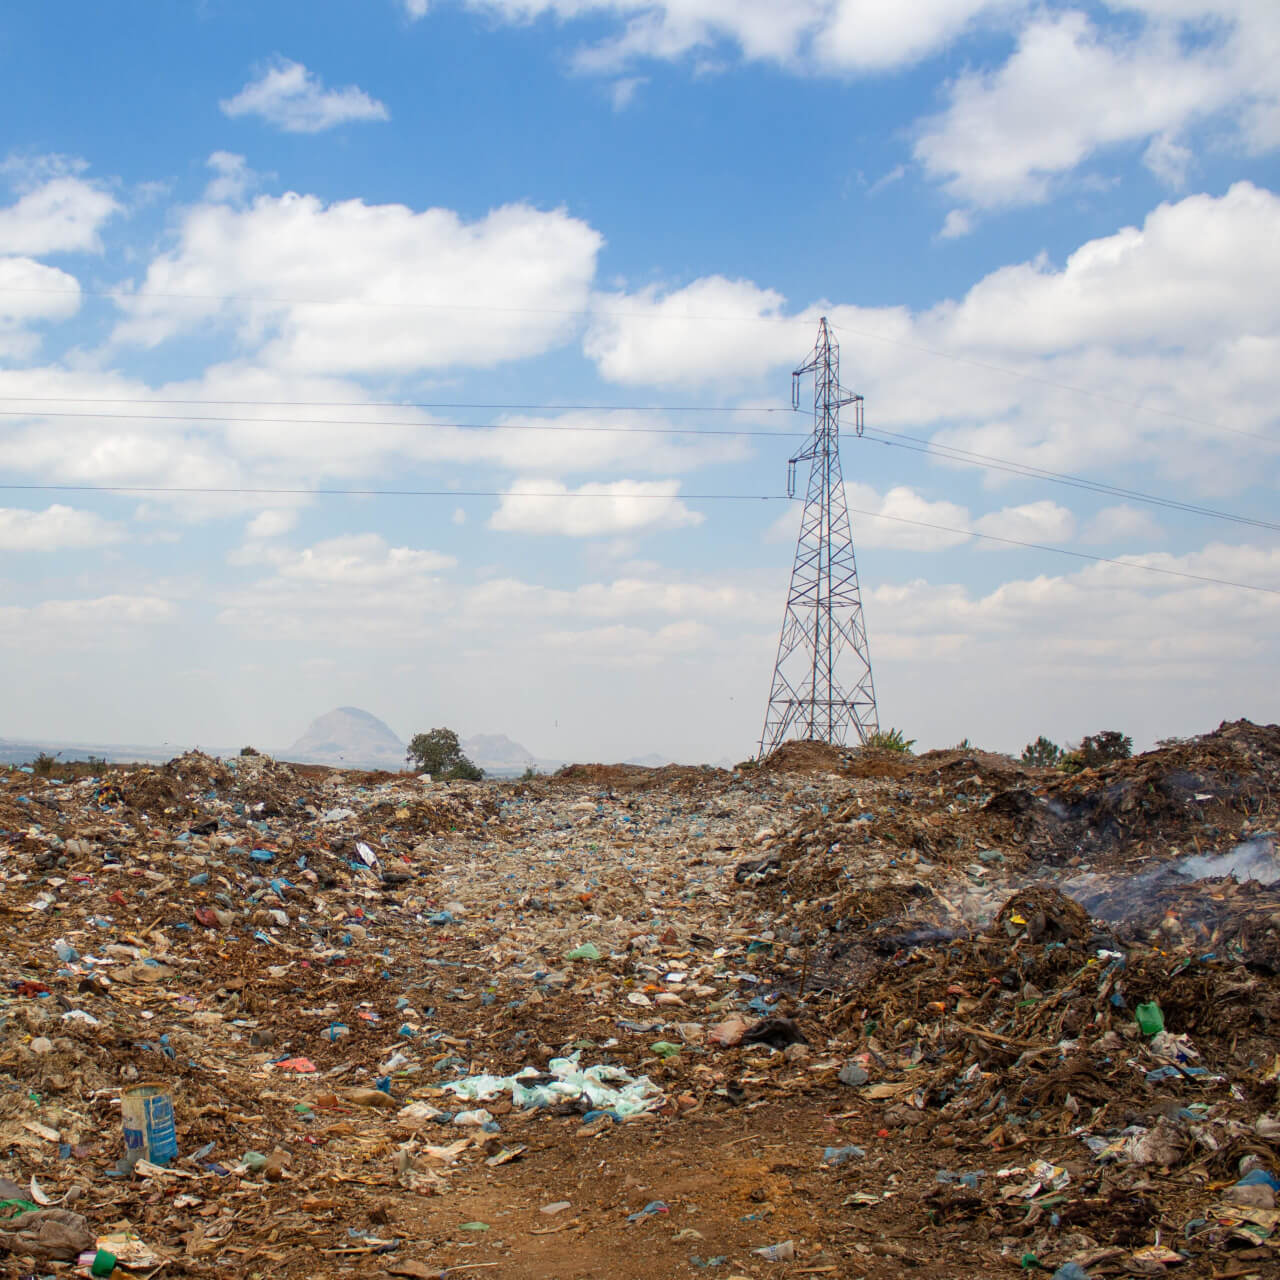 Without management, waste accumulates  and impacts on national infrastructure